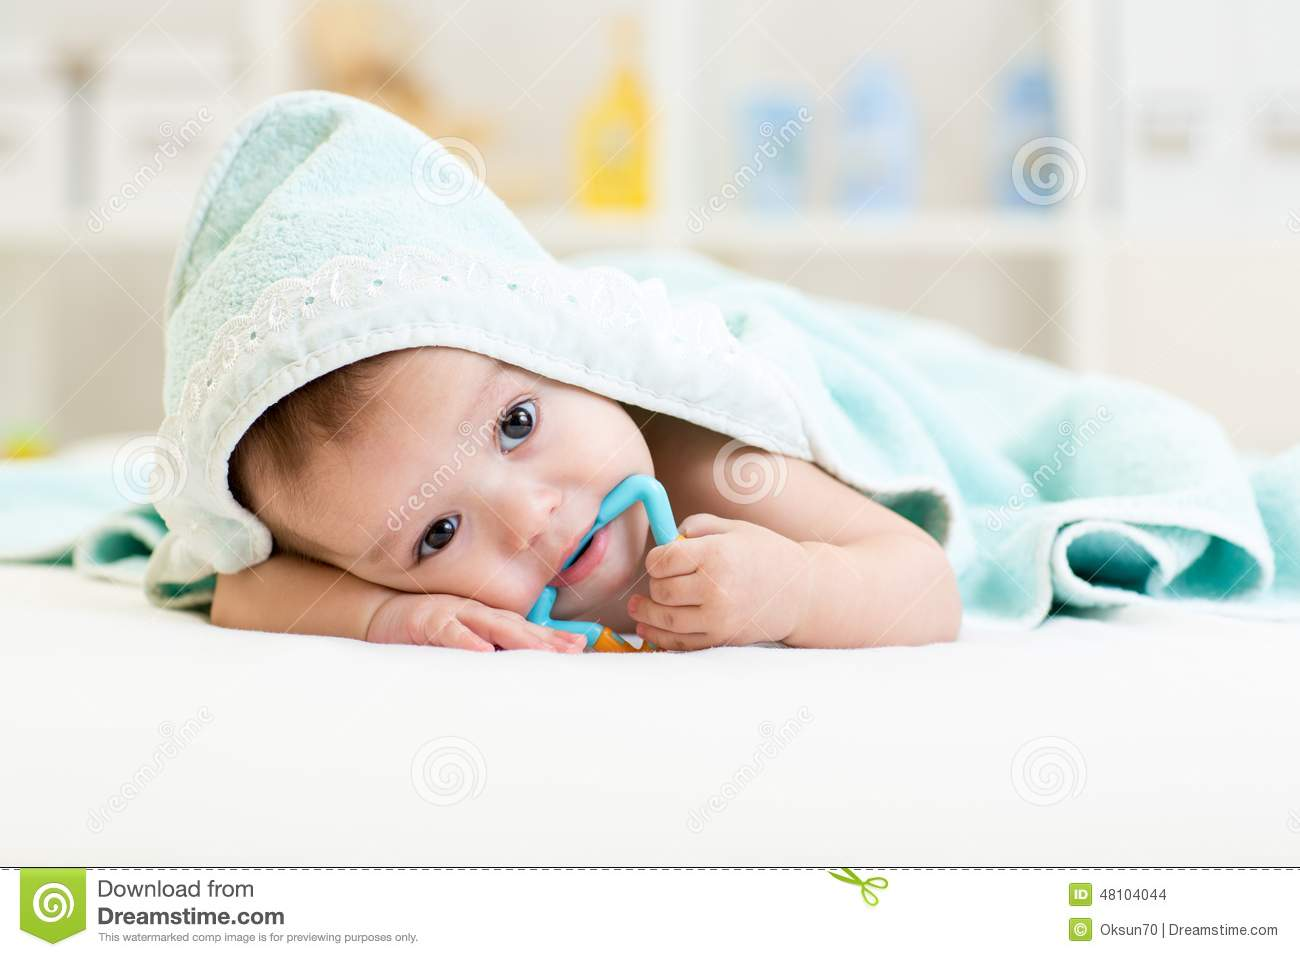 Baby boy under the towel after bathing at home